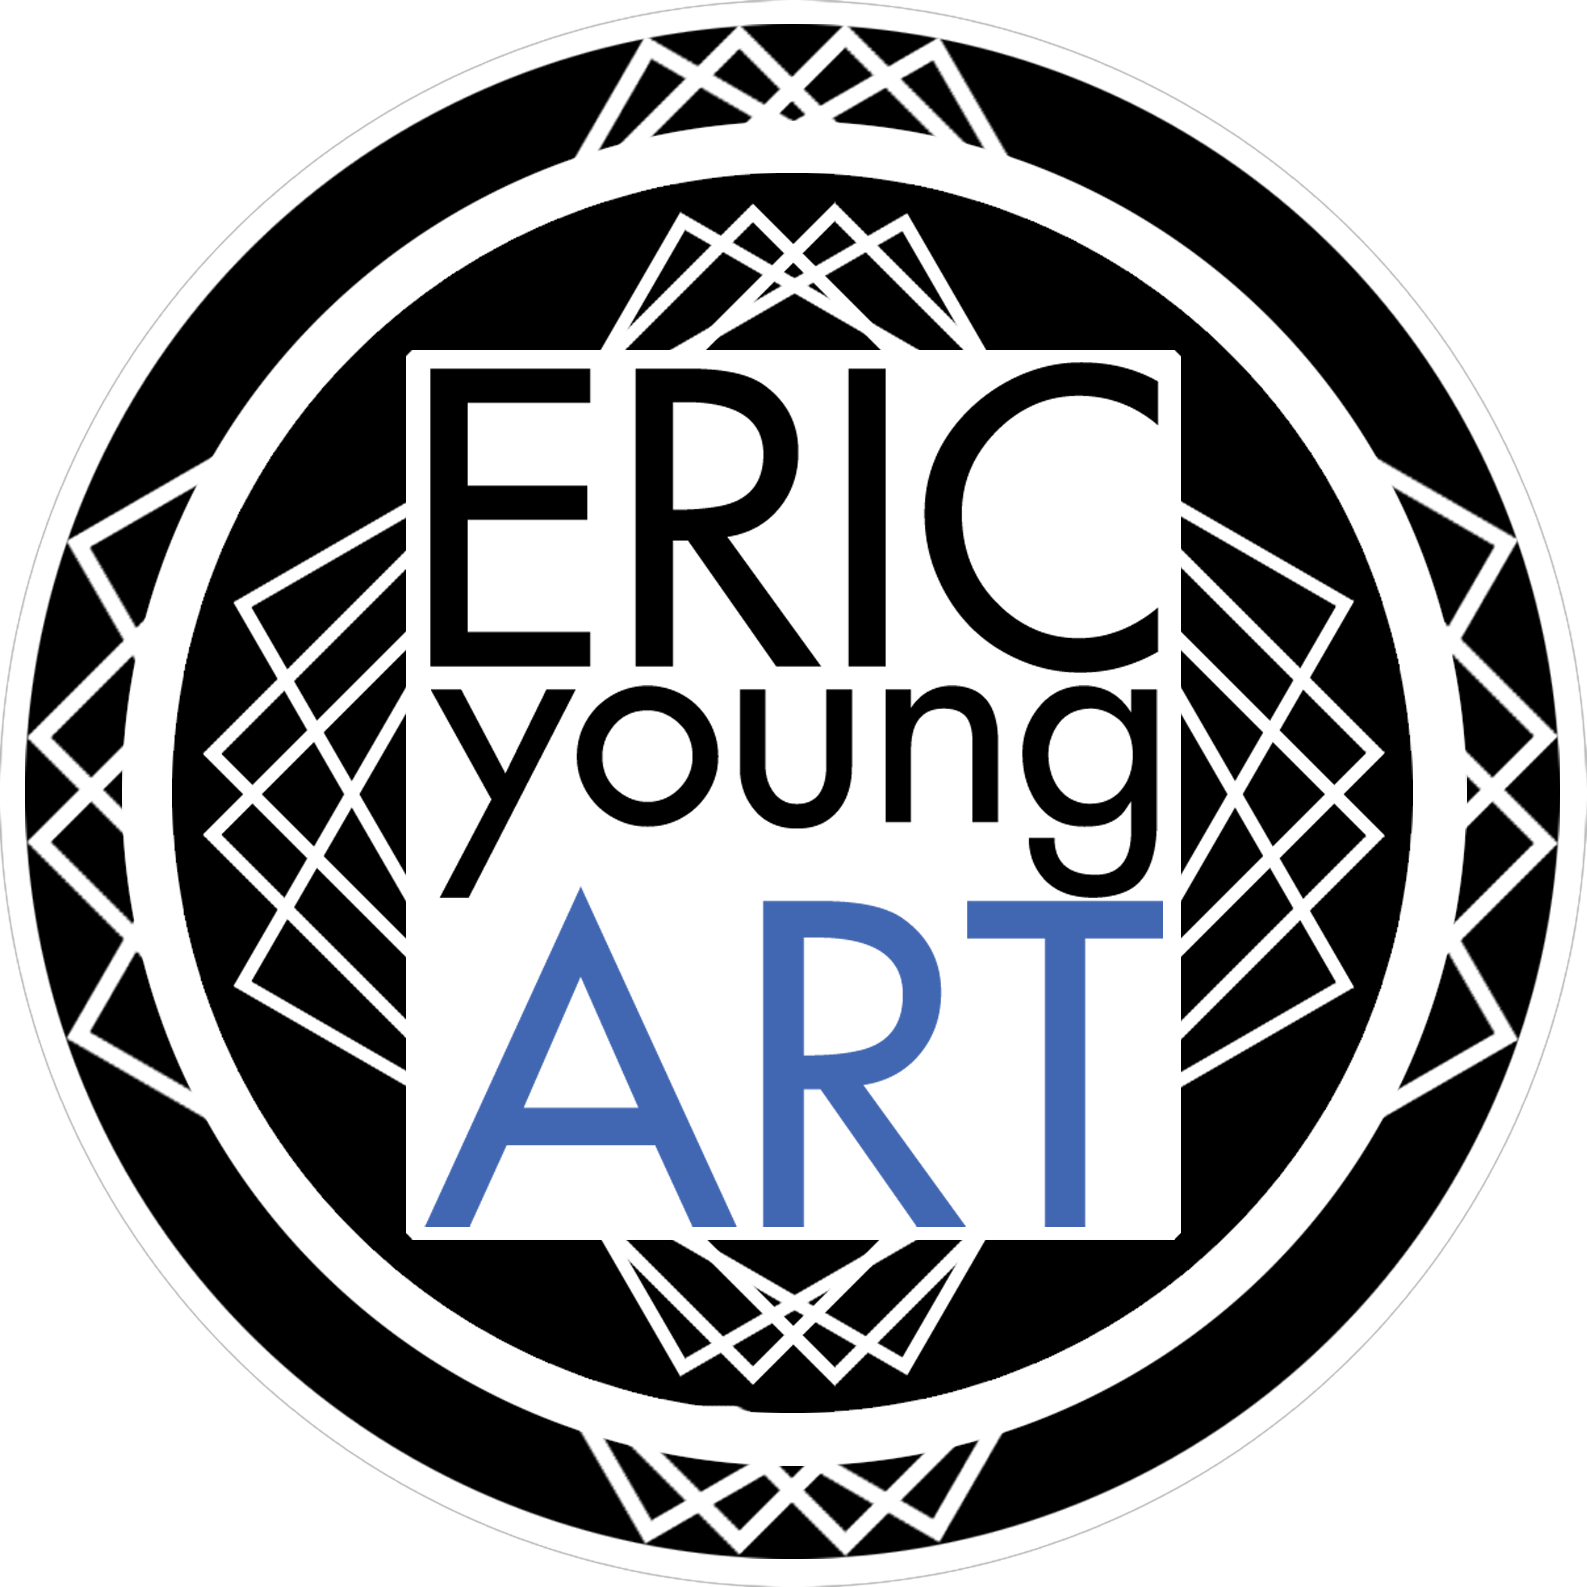 The Art of Eric Young